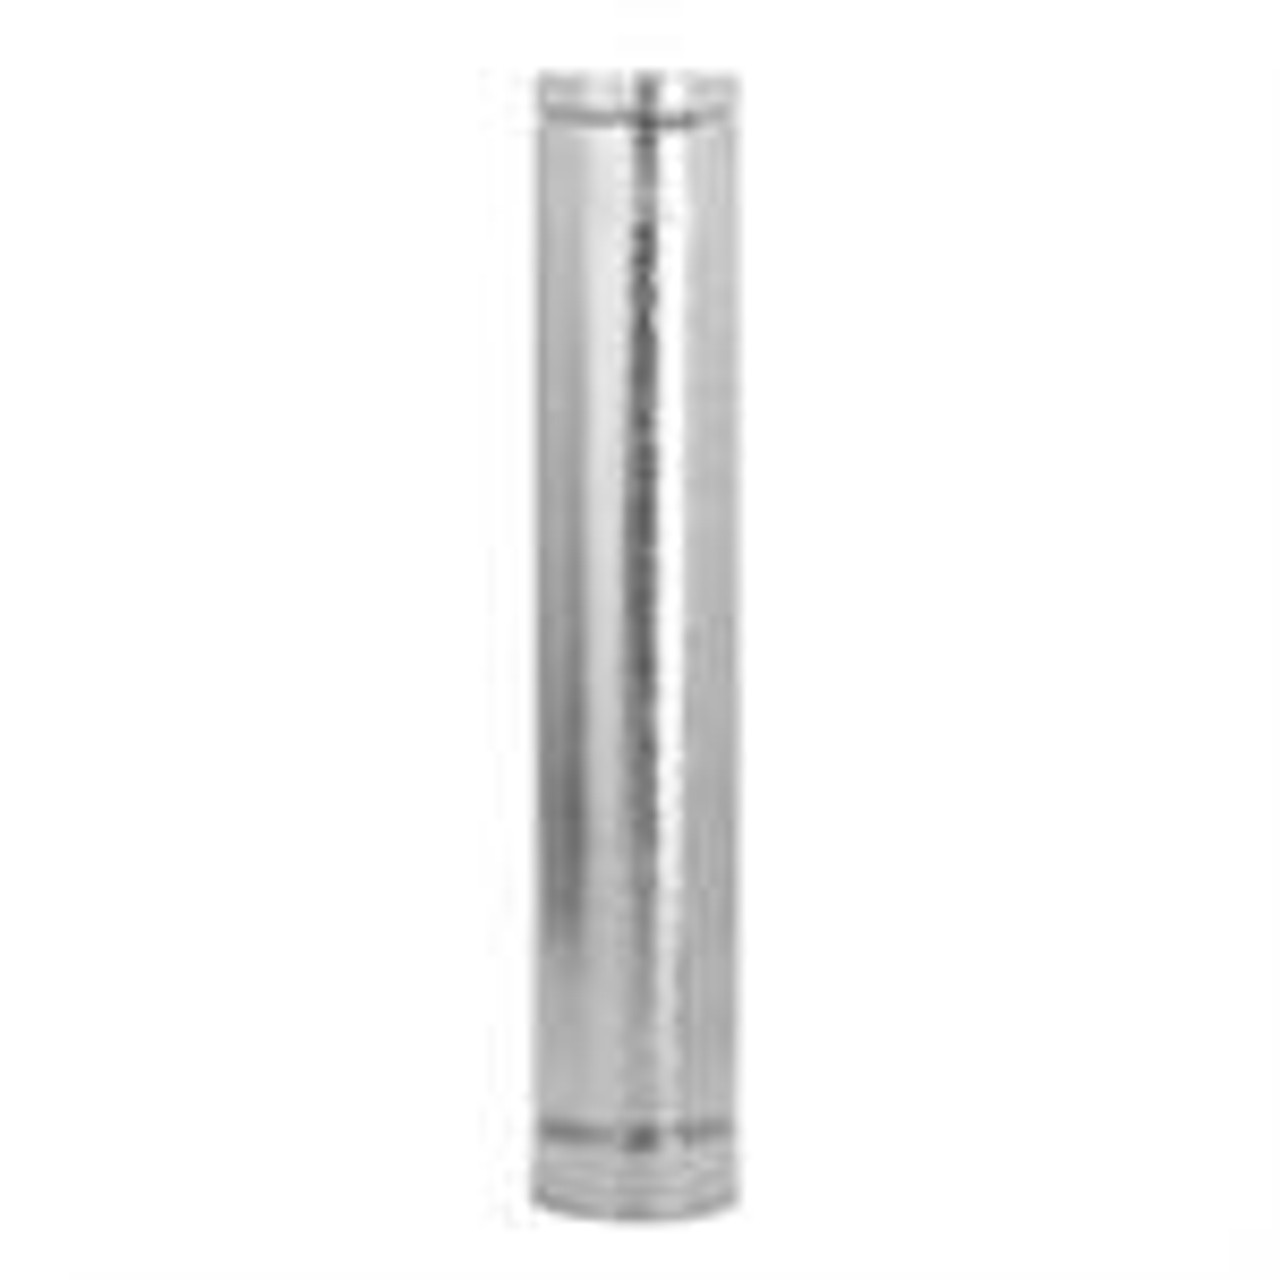 Direct Vent Chimney Pipe